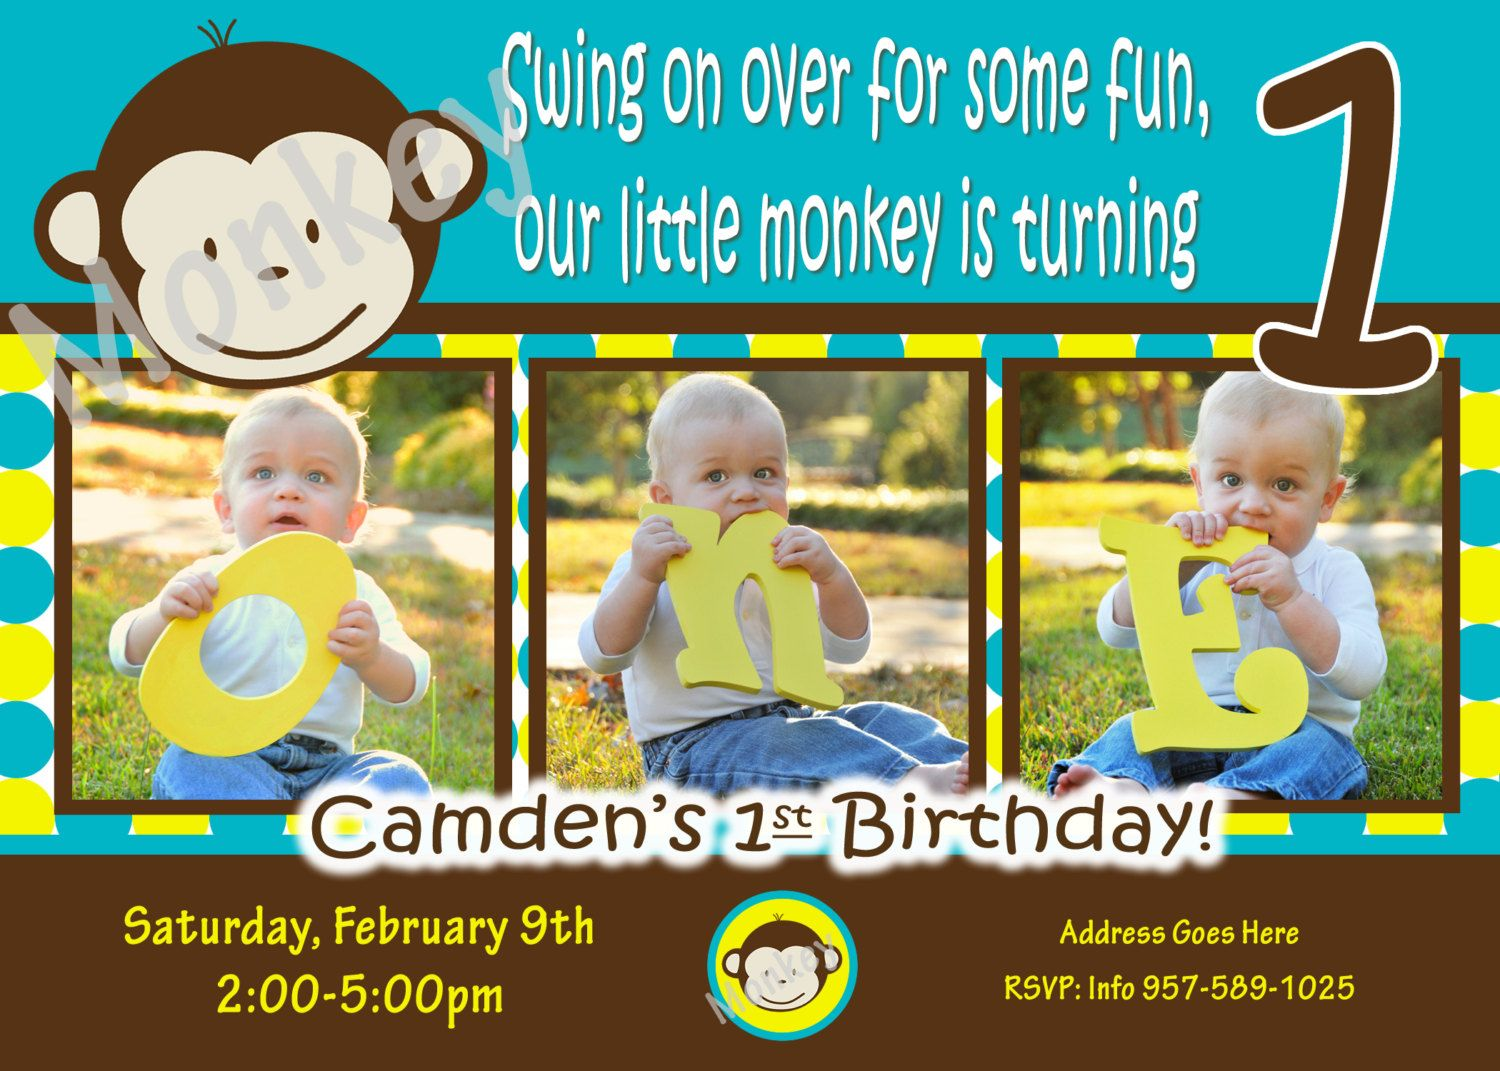 Mod monkey invitation mod monkey invite photo 1st birthday party mod monkey invitation mod monkey invite photo 1st birthday party boy pictures invite 1 year old 1st birthday invitation boy 1 year invite filmwisefo Image collections